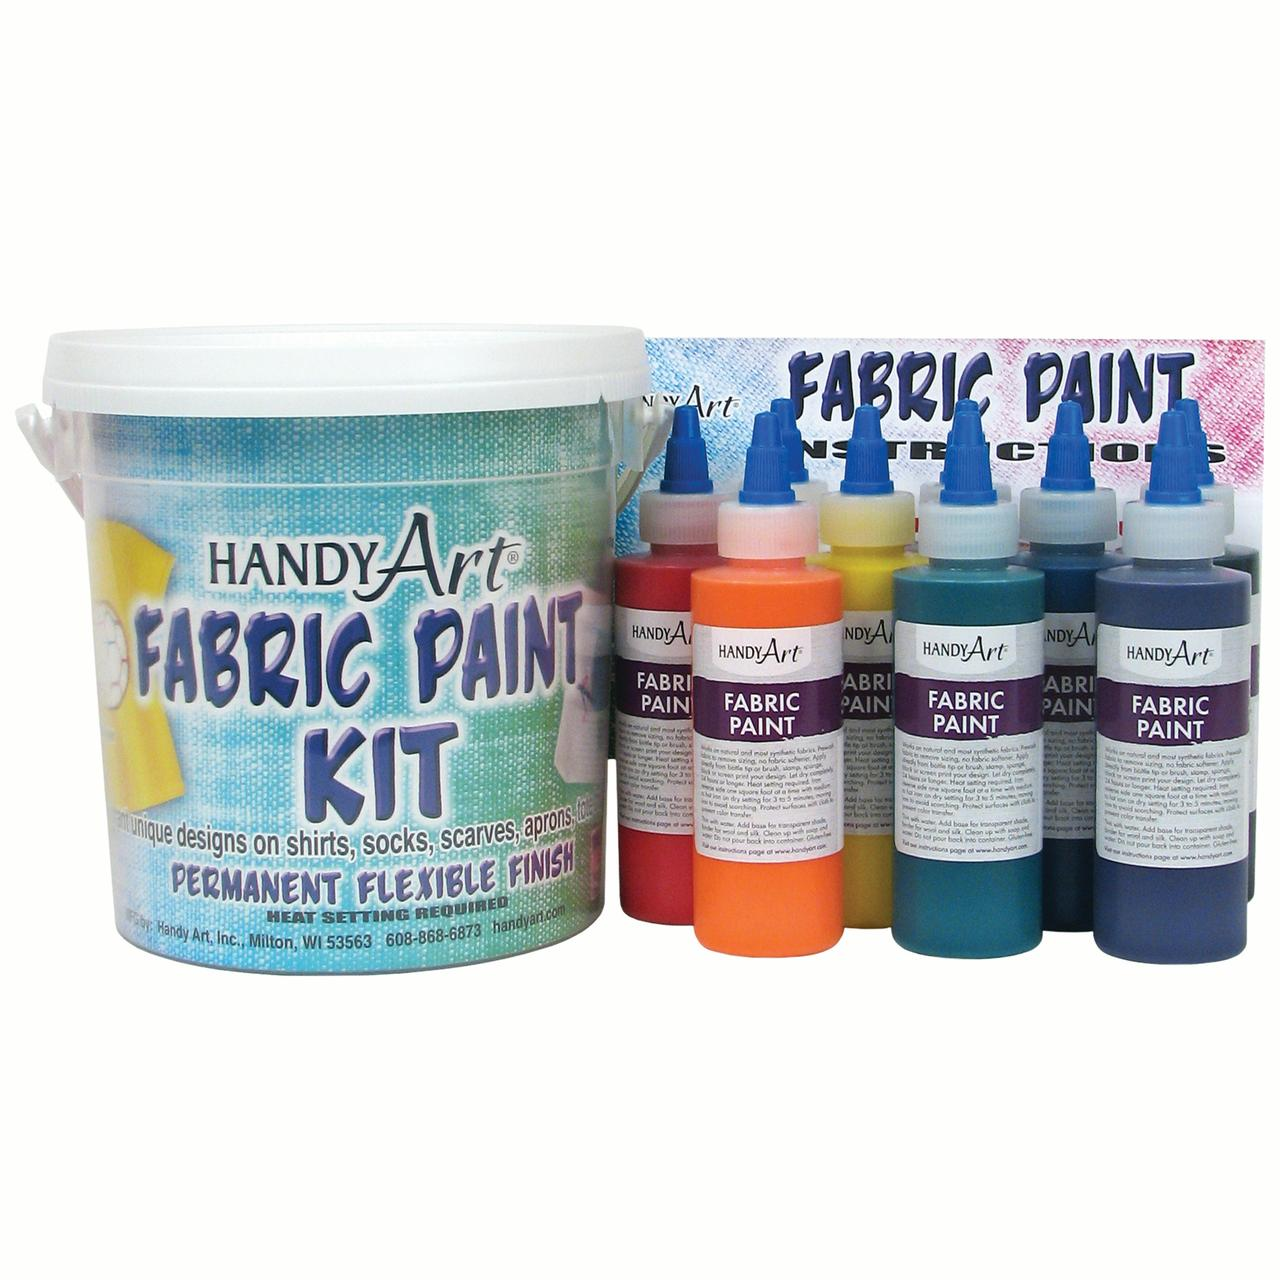 Handy Art® by Rock Paint Fabric Paint, Regular Colors, Nine 4 oz bottles